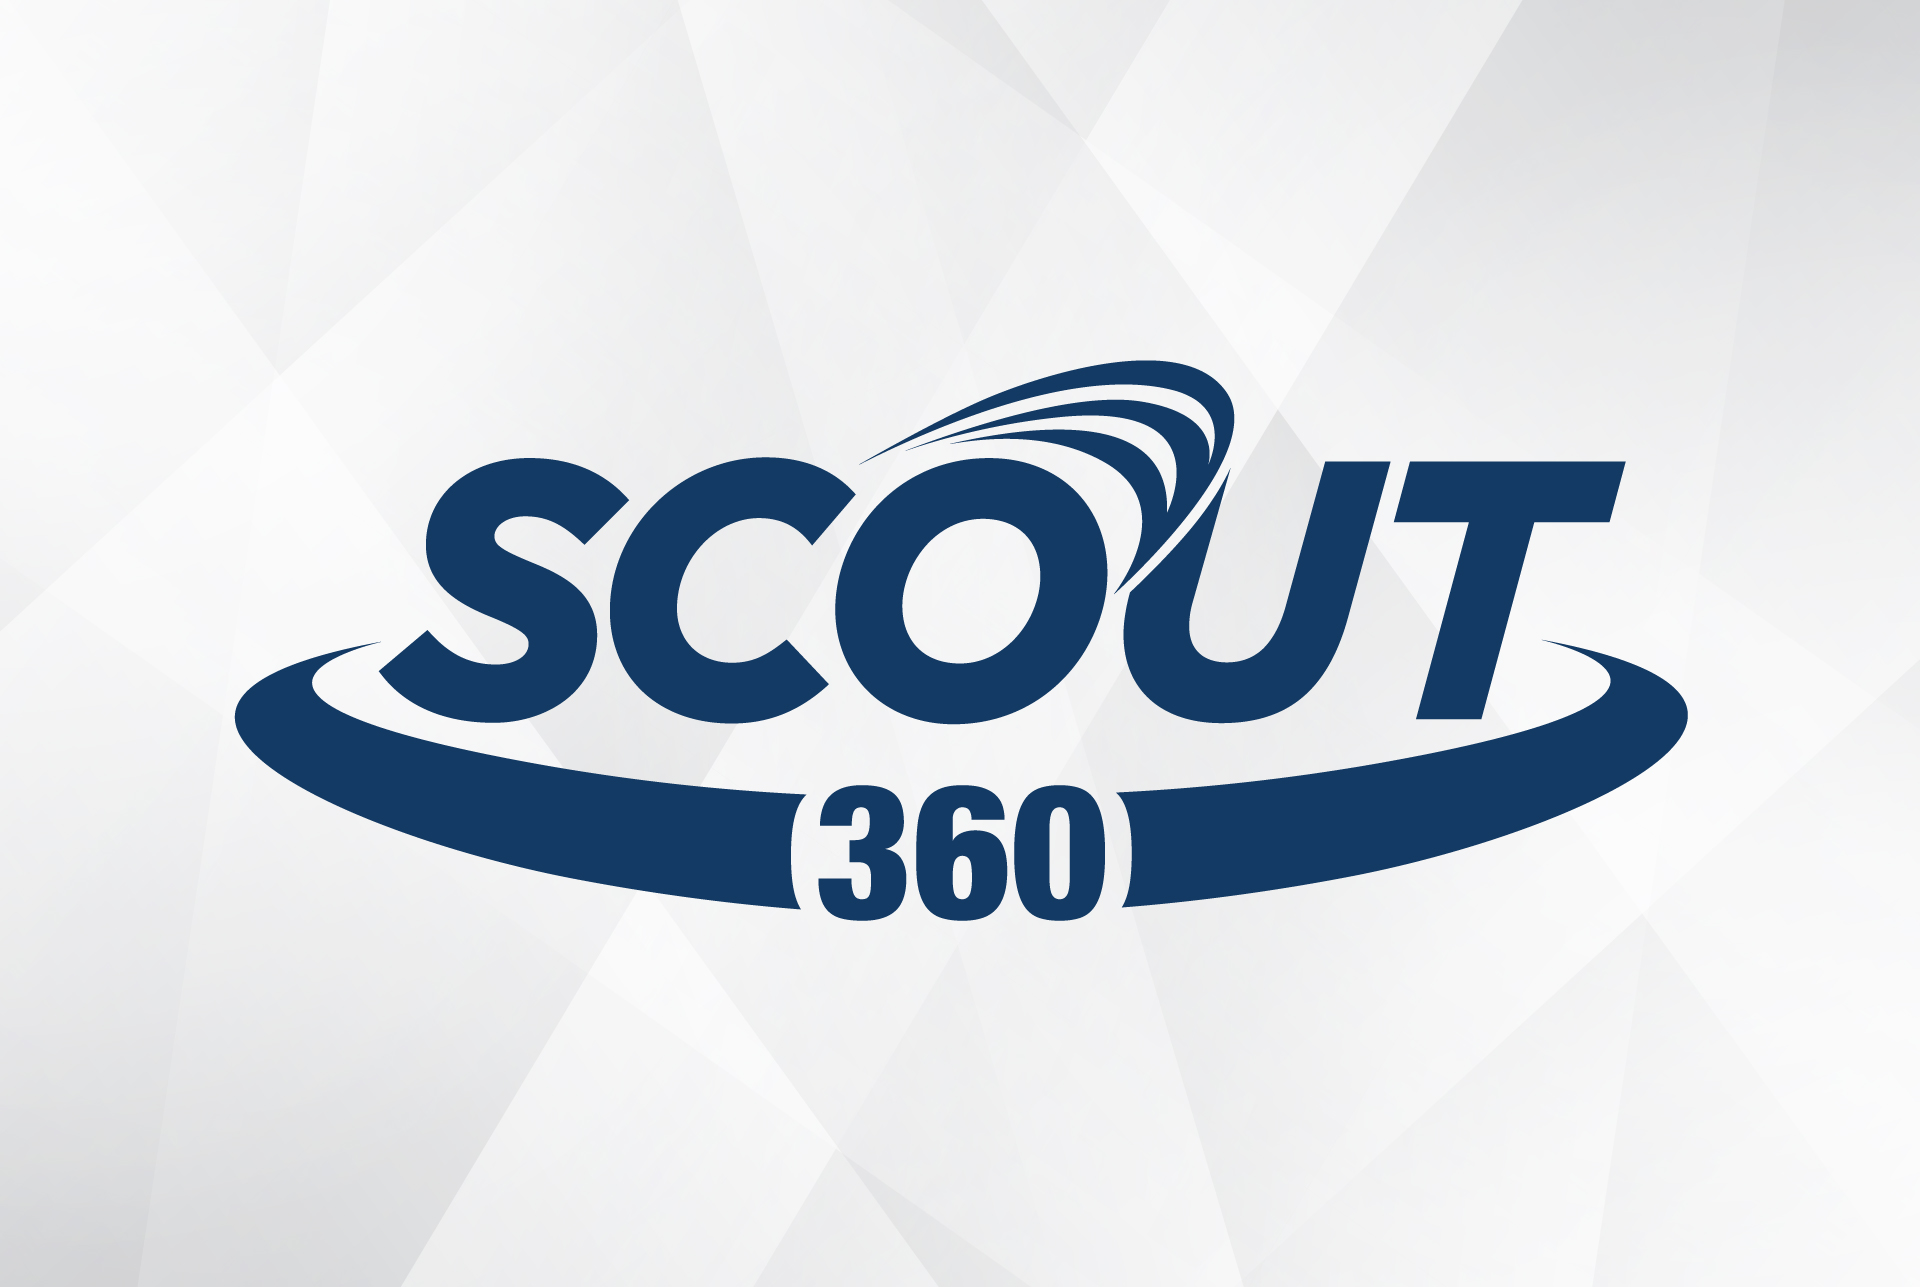 Horizon's Scout Launches Scout 360